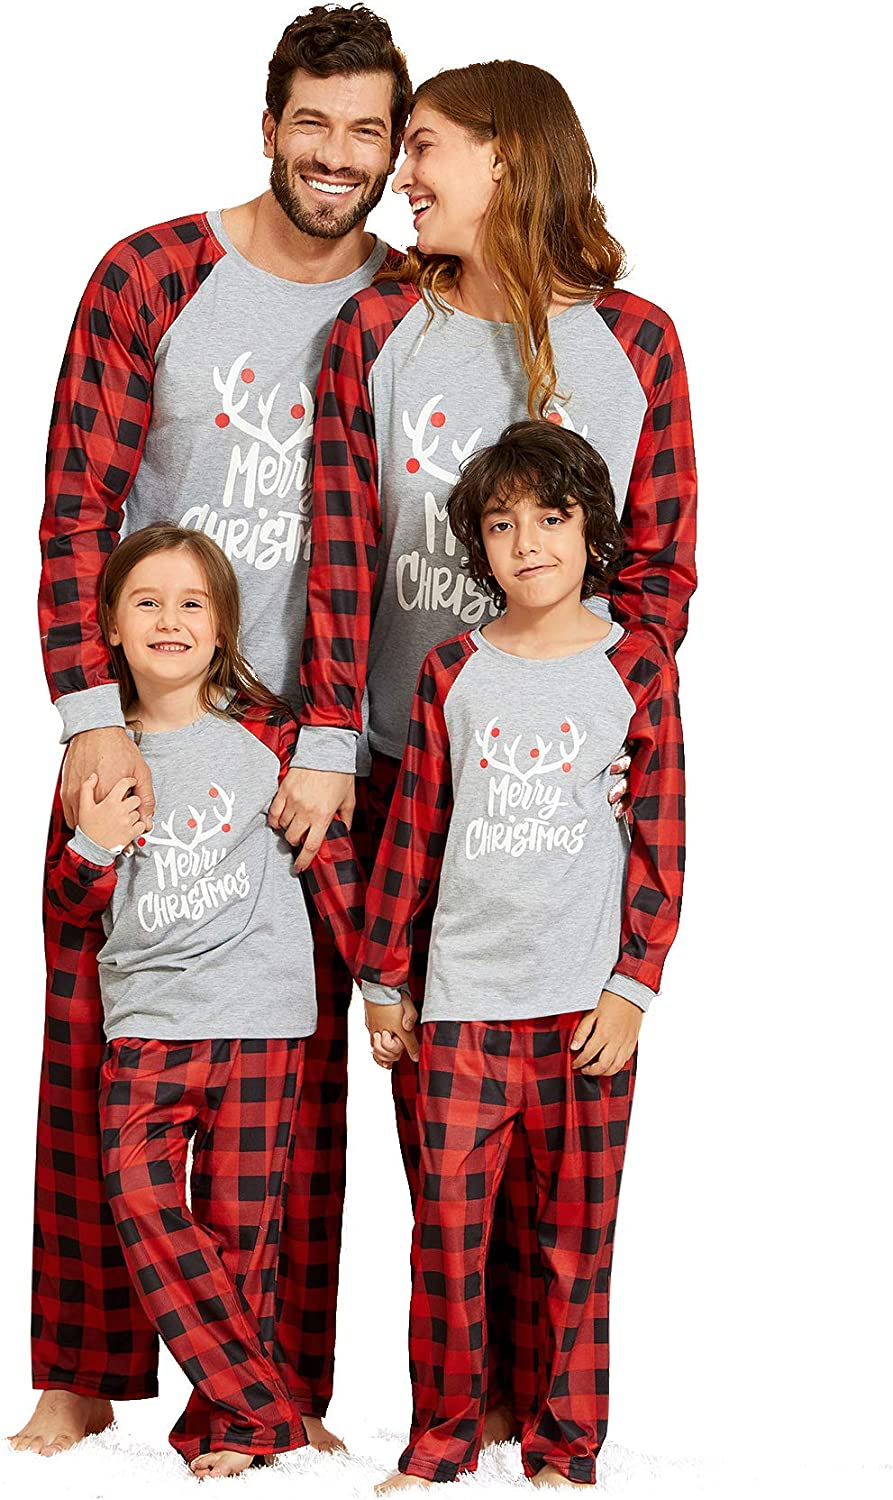 IFFEI Matching Family Elegant Pajamas Sets Lowest price challenge with Christmas Letter PJ's an